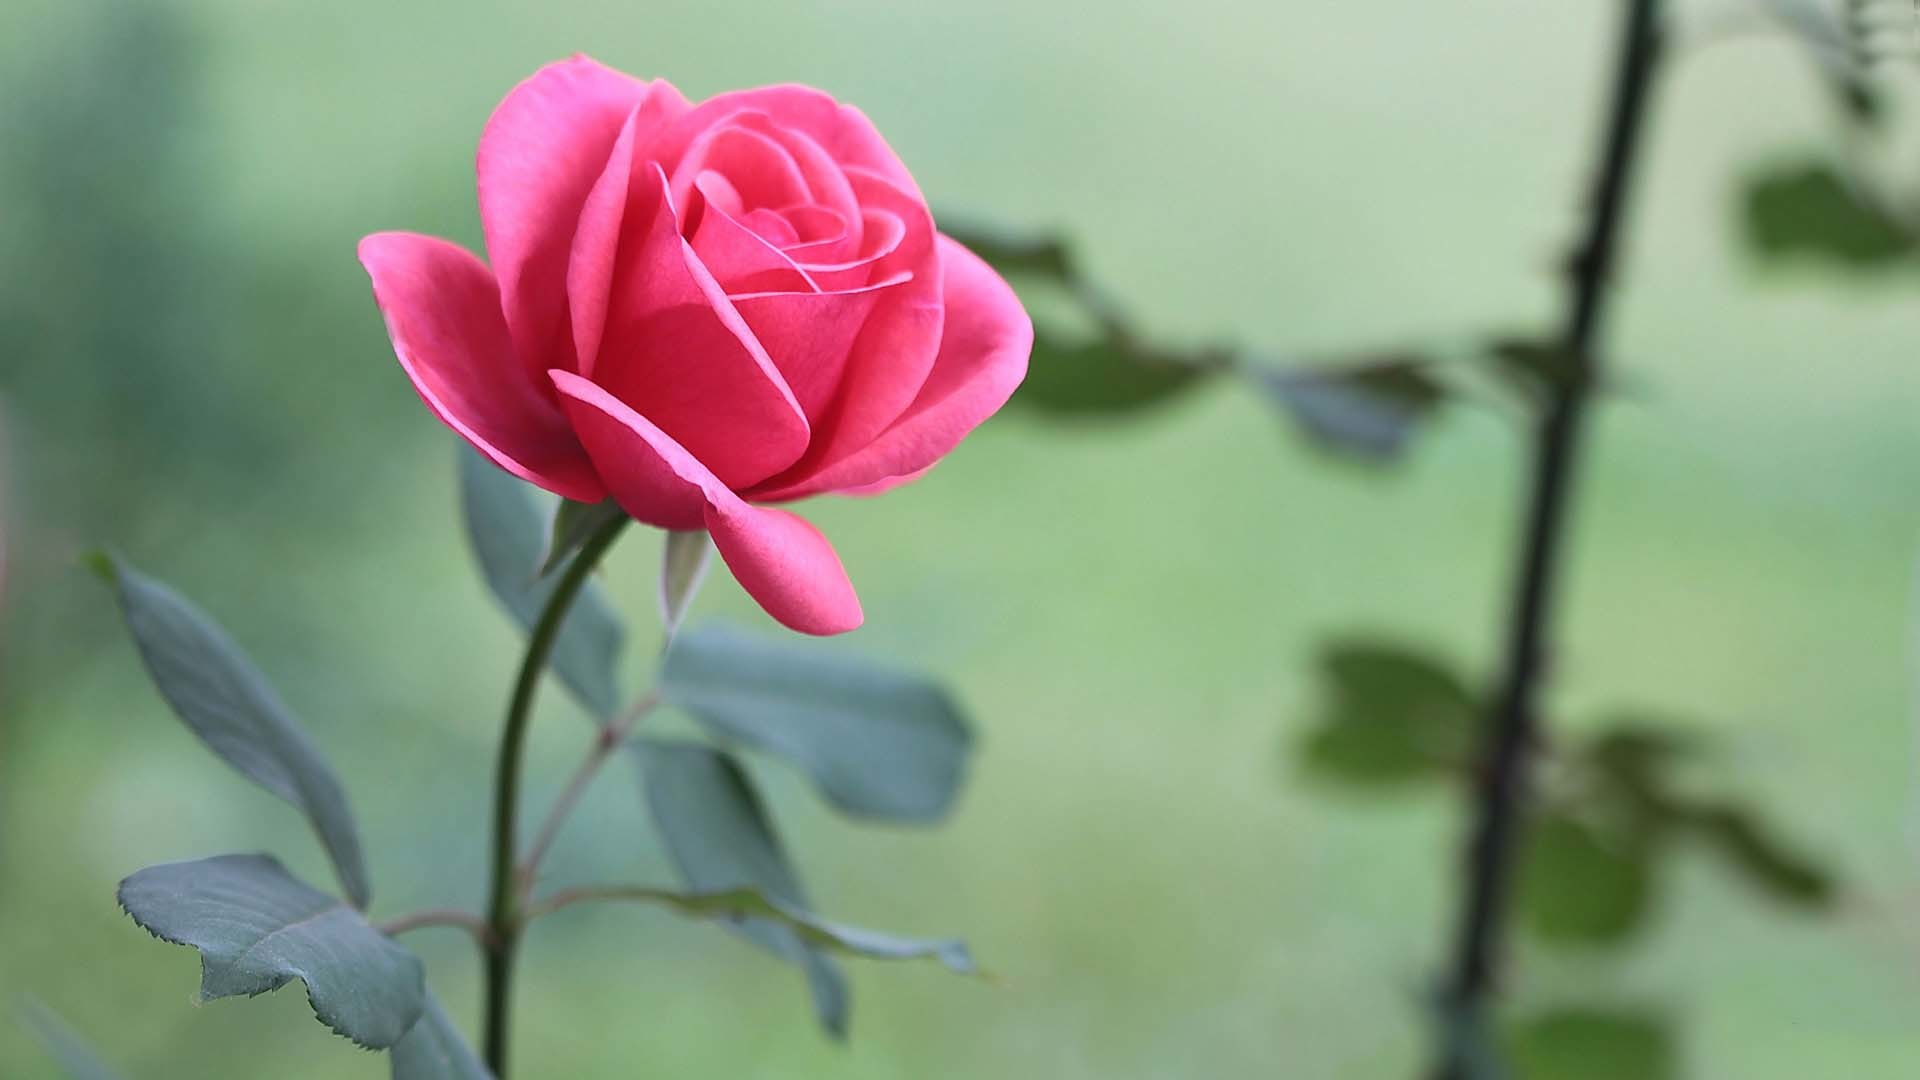 Pink rose flower wallpaper 62 pictures 1920x1080 beautiful pink rose flower hd wallpaper izmirmasajfo